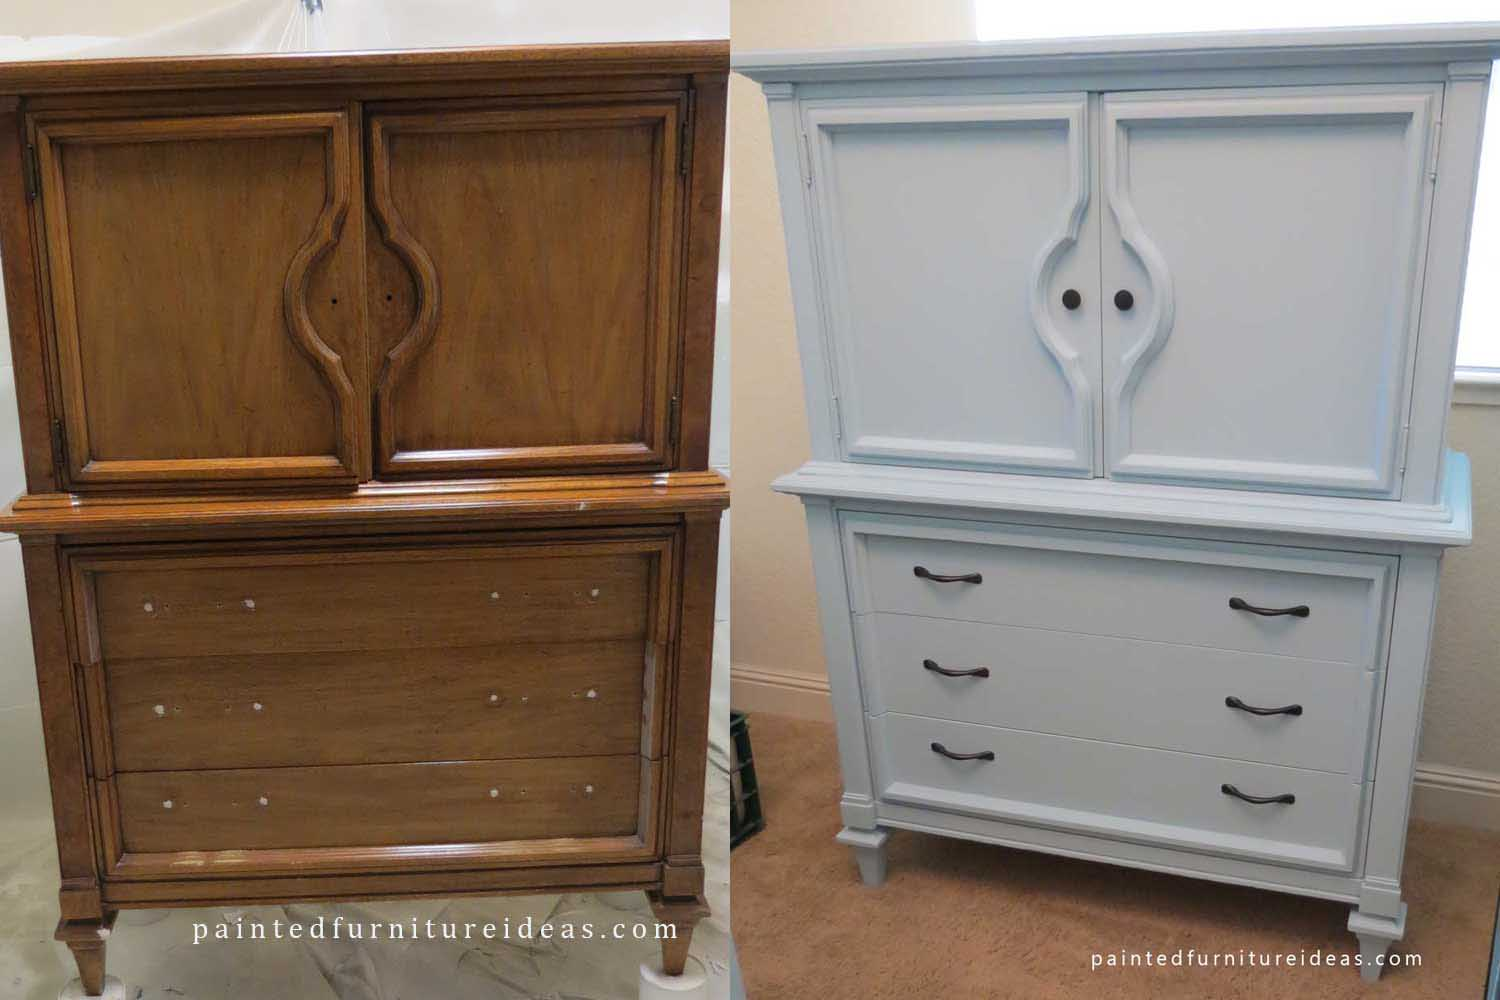 Images of 60u0027s Armoire Before and After - Painted Furniture Ideas painted furniture ideas before and after